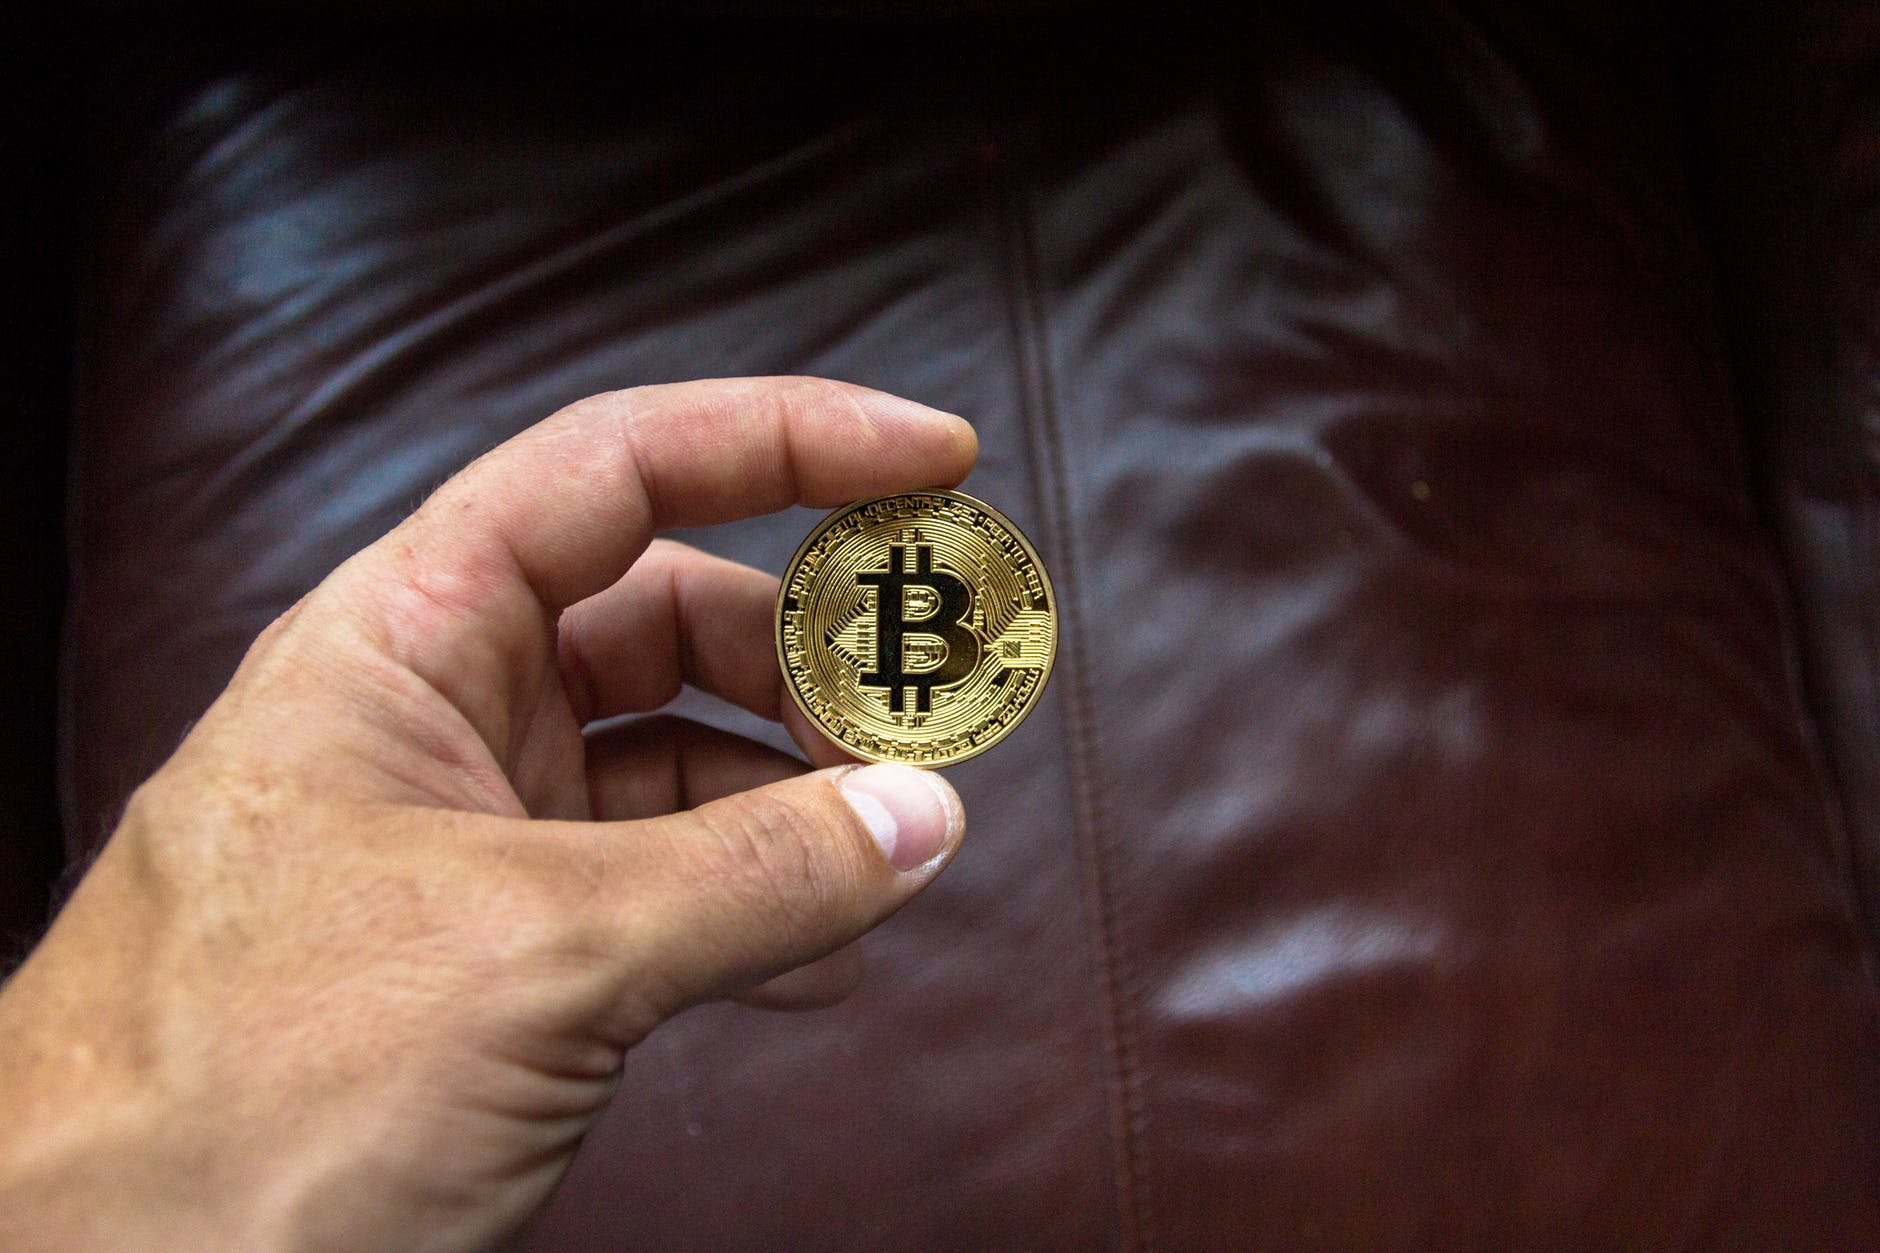 Hackers steal $40 million worth of bitcoin in massive security breach